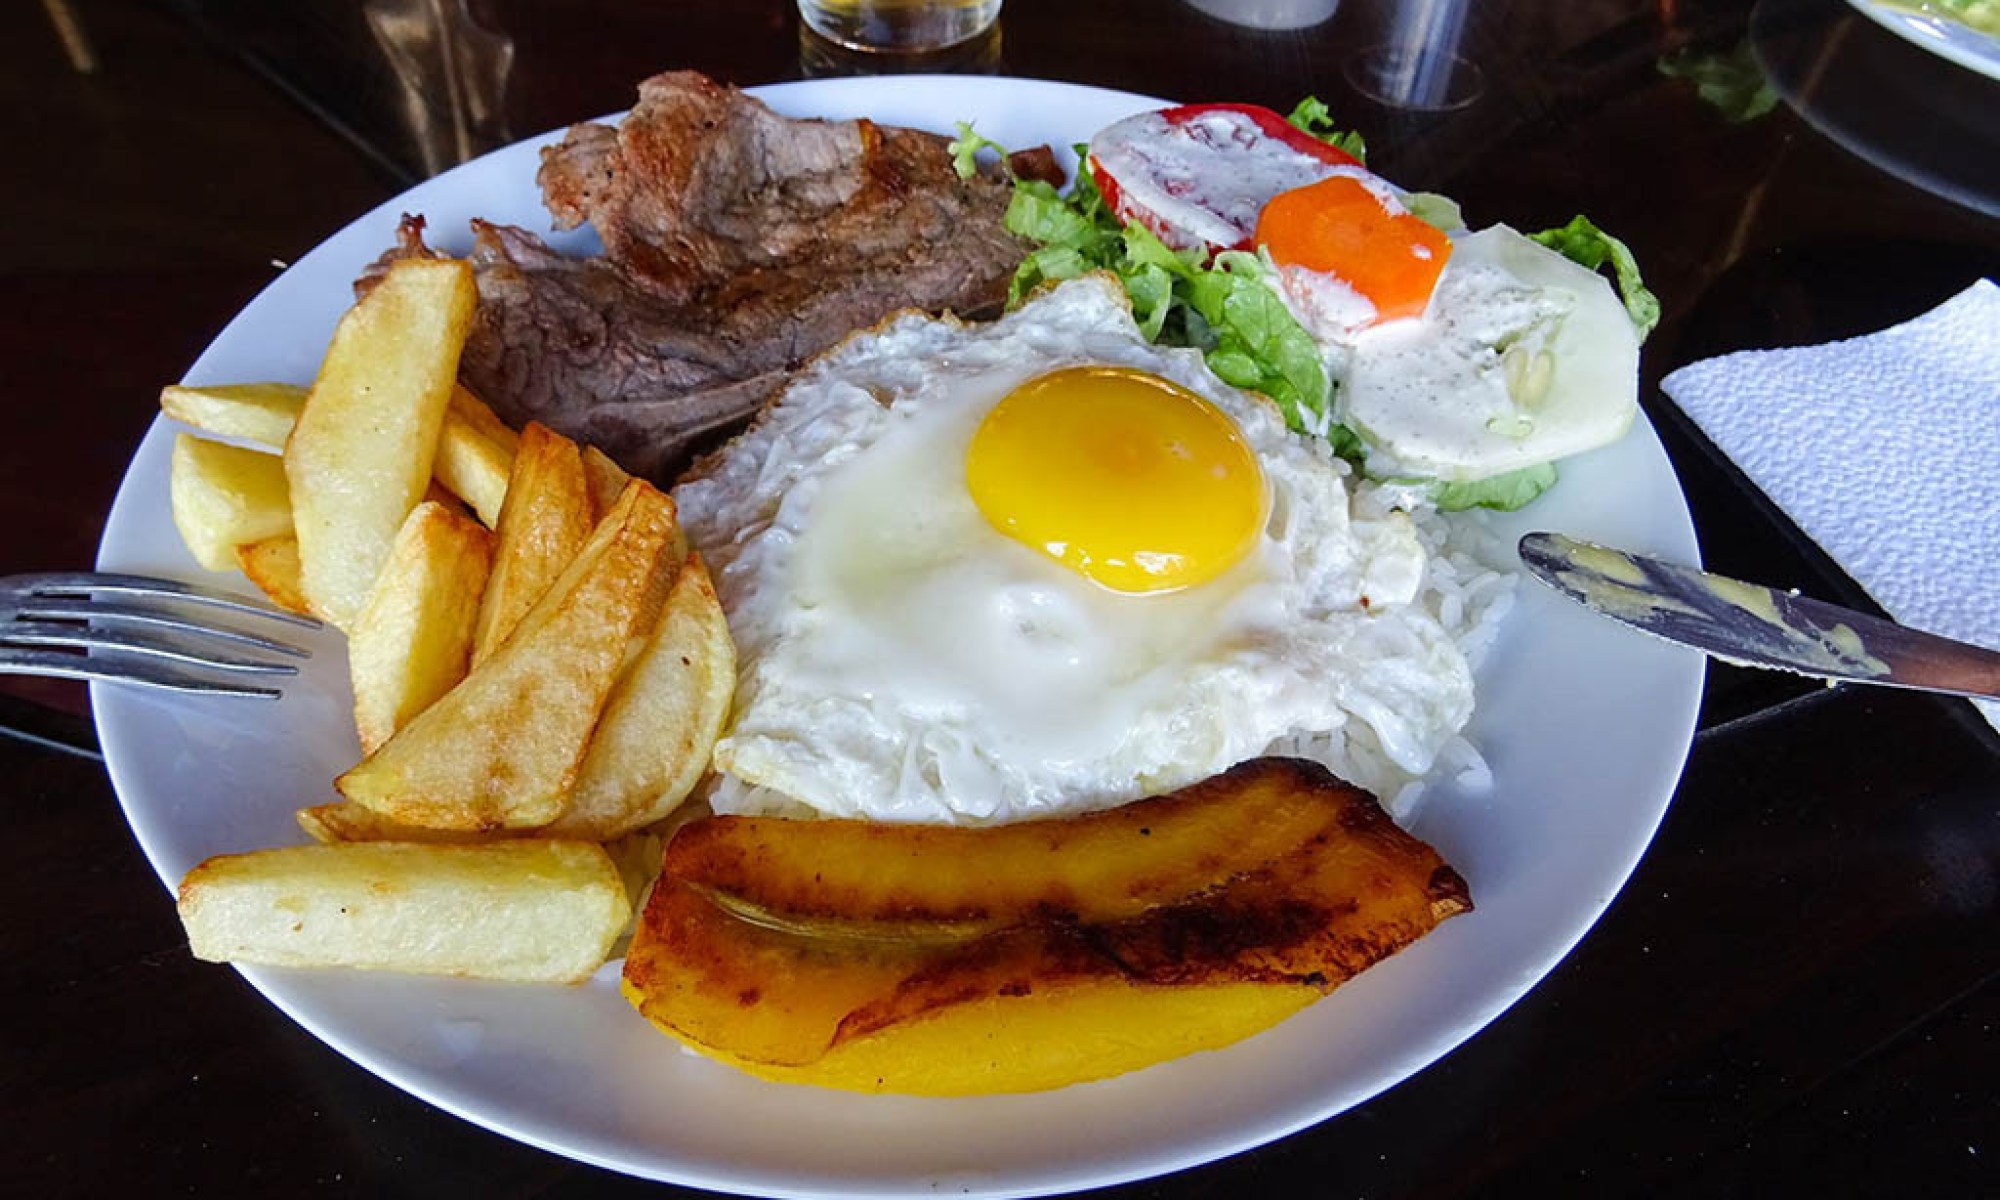 At amenú restaurant in Nazca I had a main course of steak, plantain, egg, chips and salad